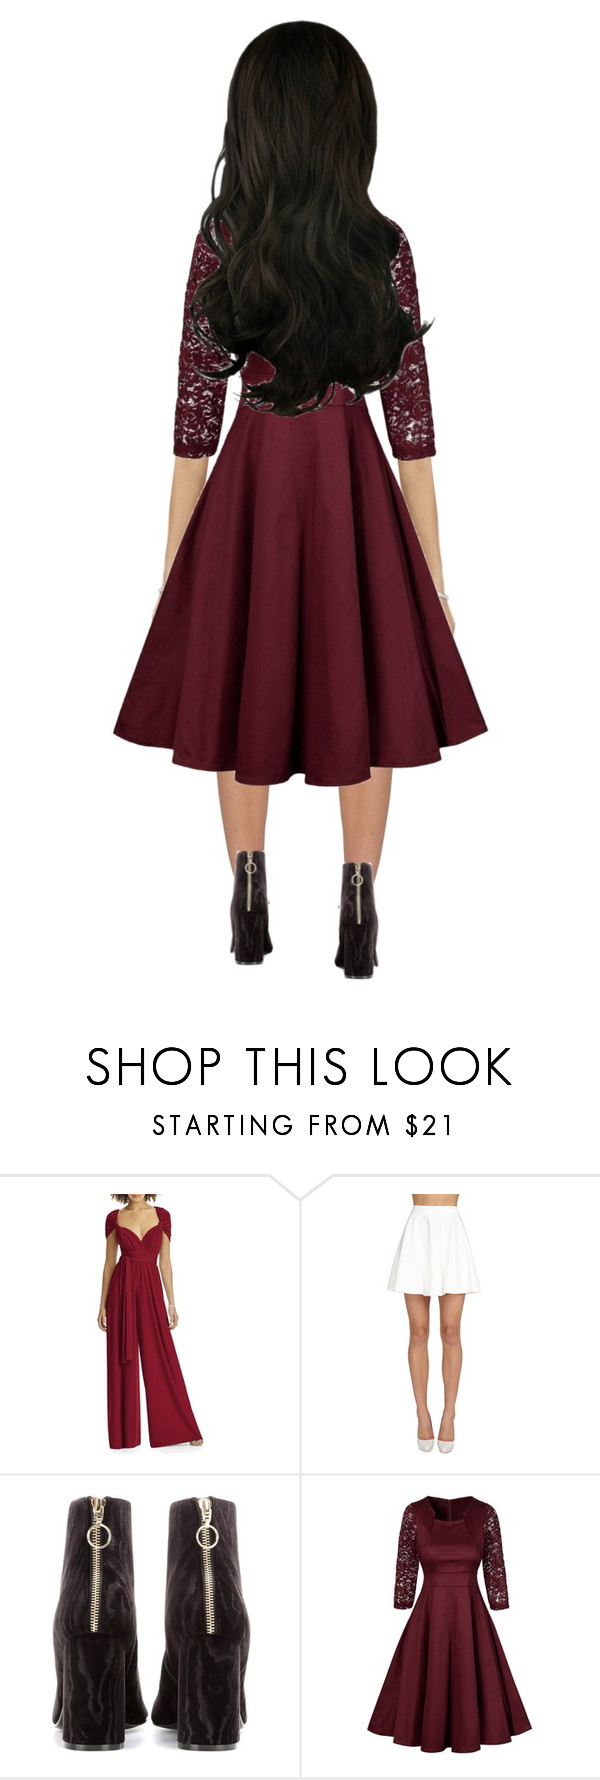 """""""Untitled #129"""" by stylemepurty ❤ liked on Polyvore featuring Dessy Collection, Alice + Olivia, STELLA McCARTNEY, GetTheLook, Favorite and doll"""